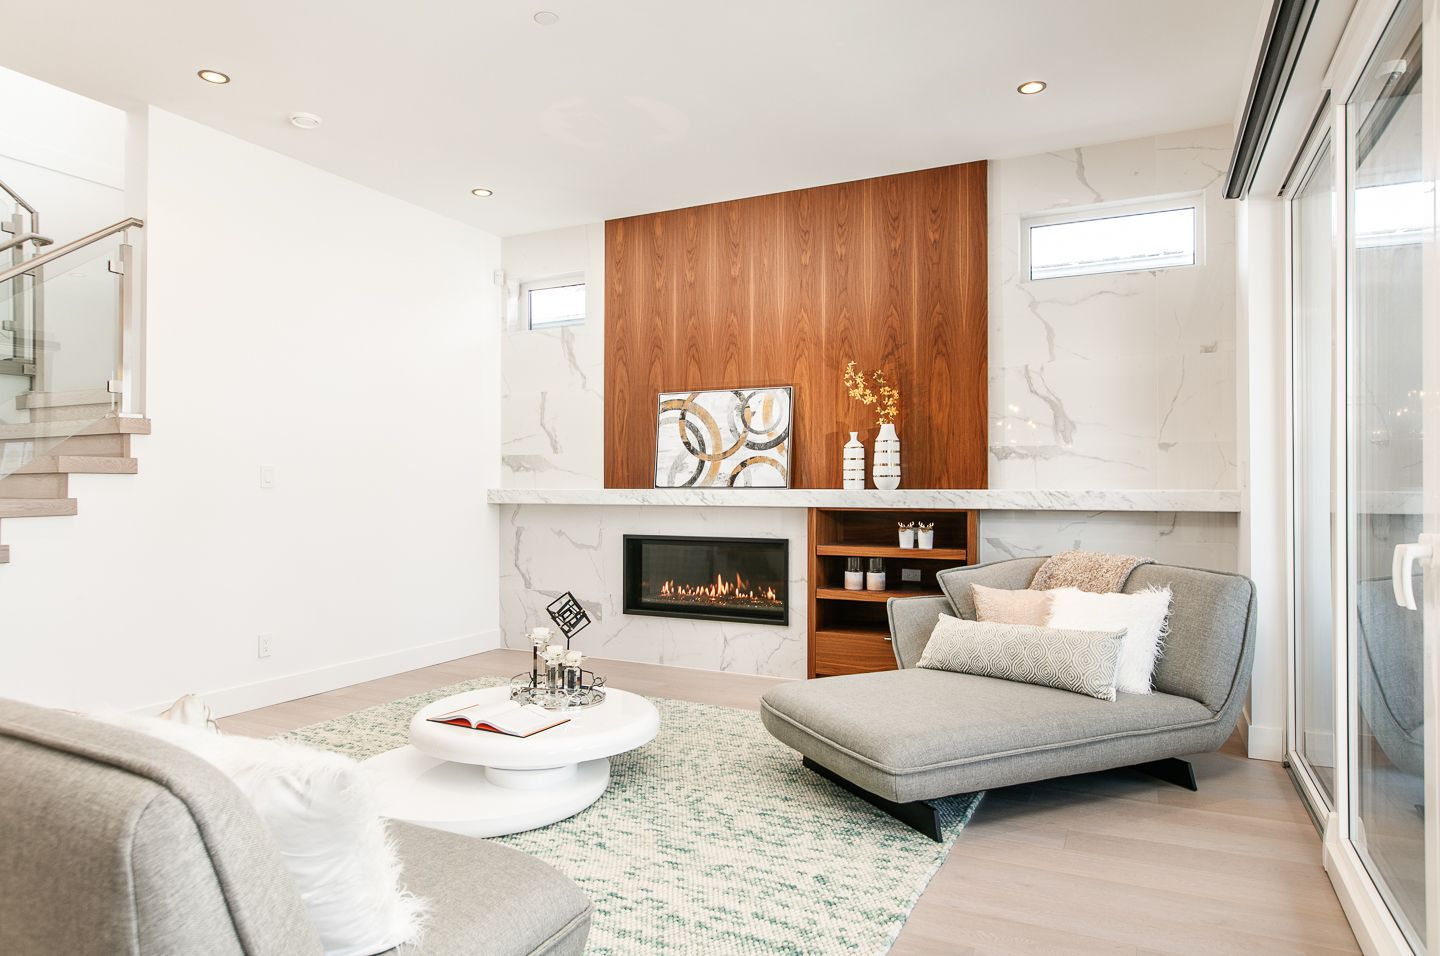 Photo 15: Photos: 6978 LAUREL ST in VANCOUVER: South Cambie House for sale (Vancouver West)